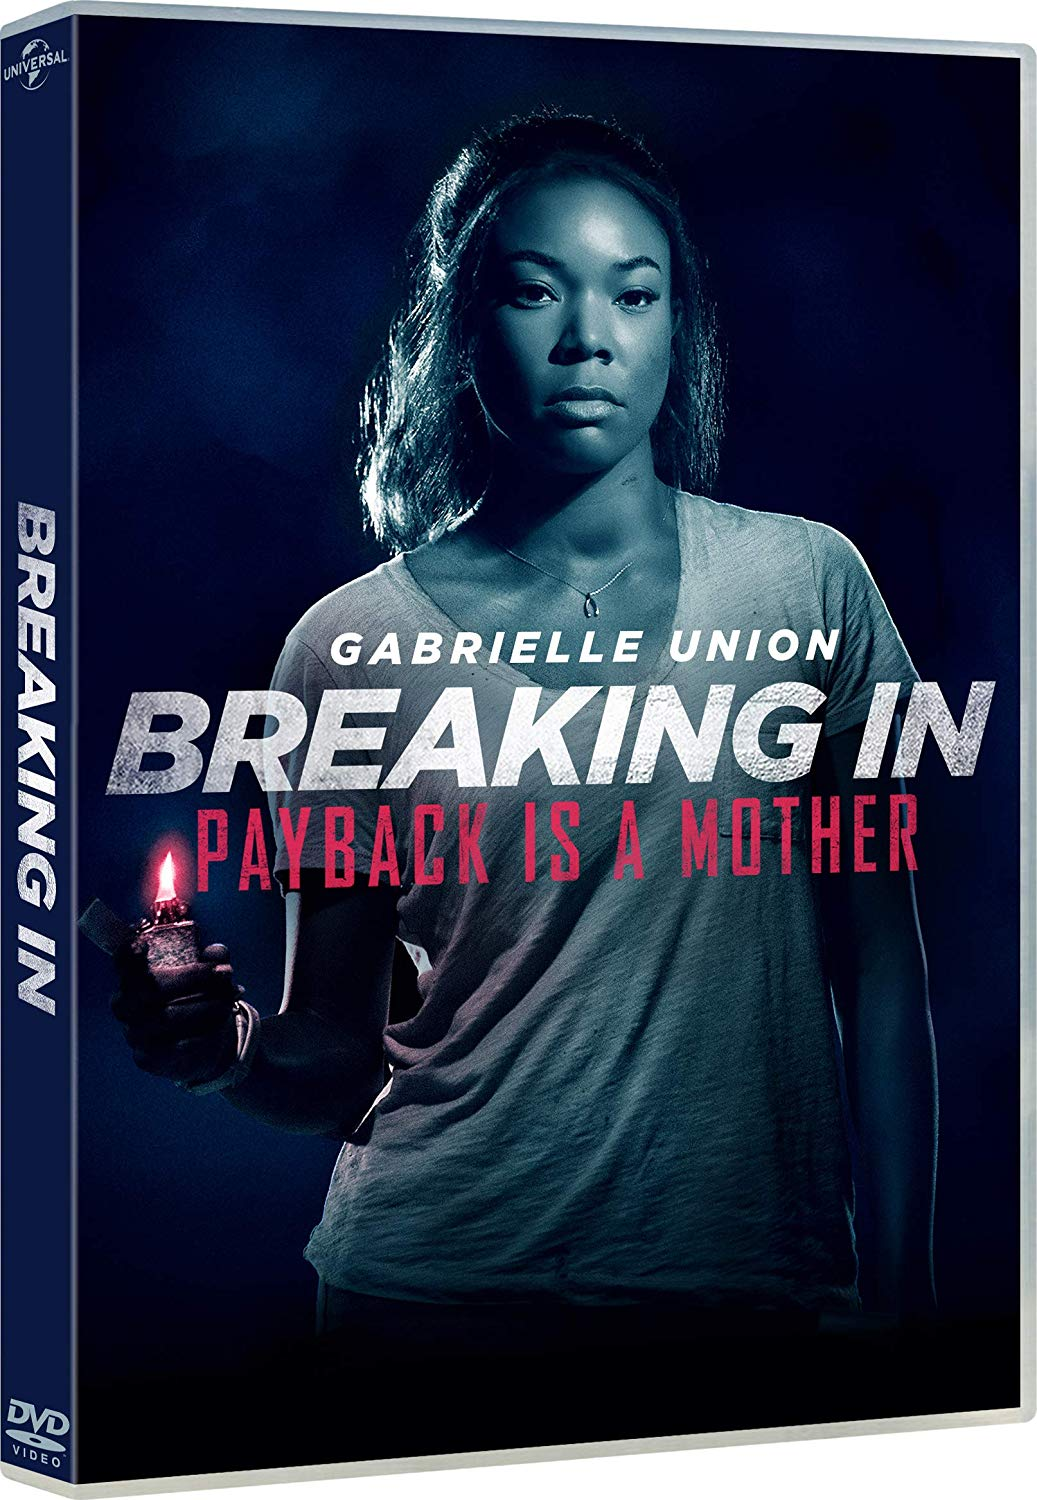 BREAKING IN (DVD)